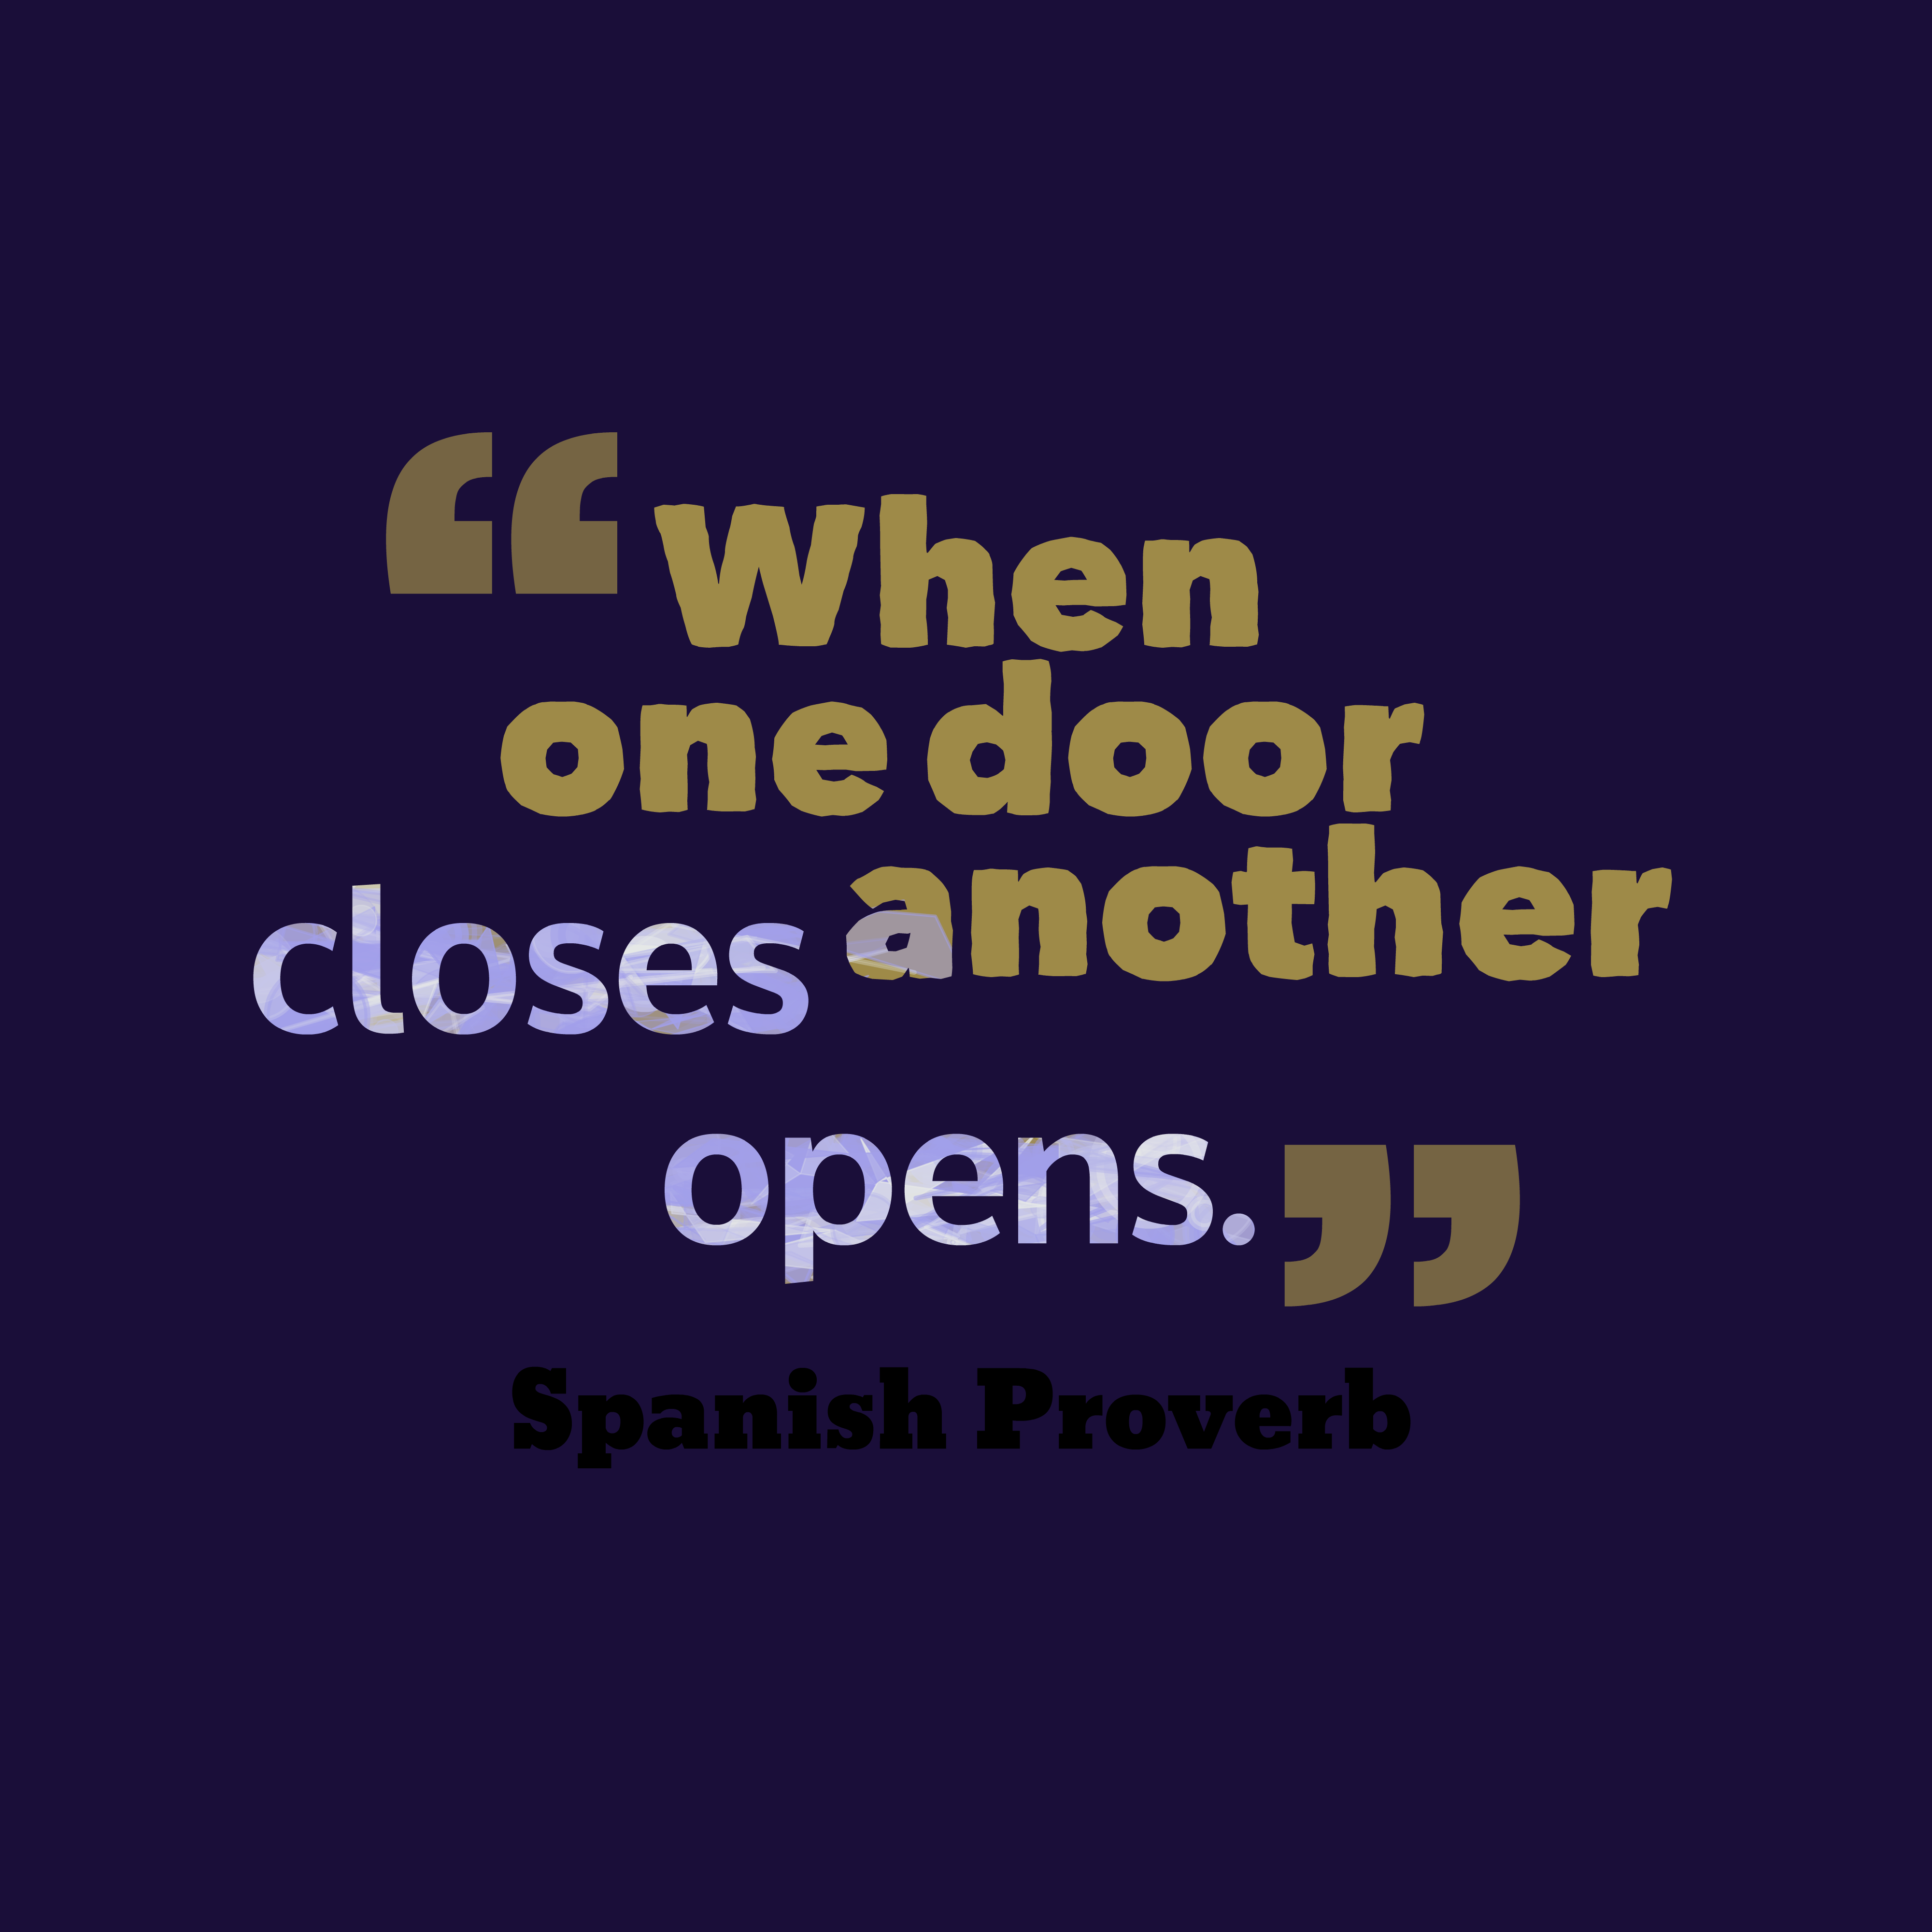 Spanish Proverb About Change